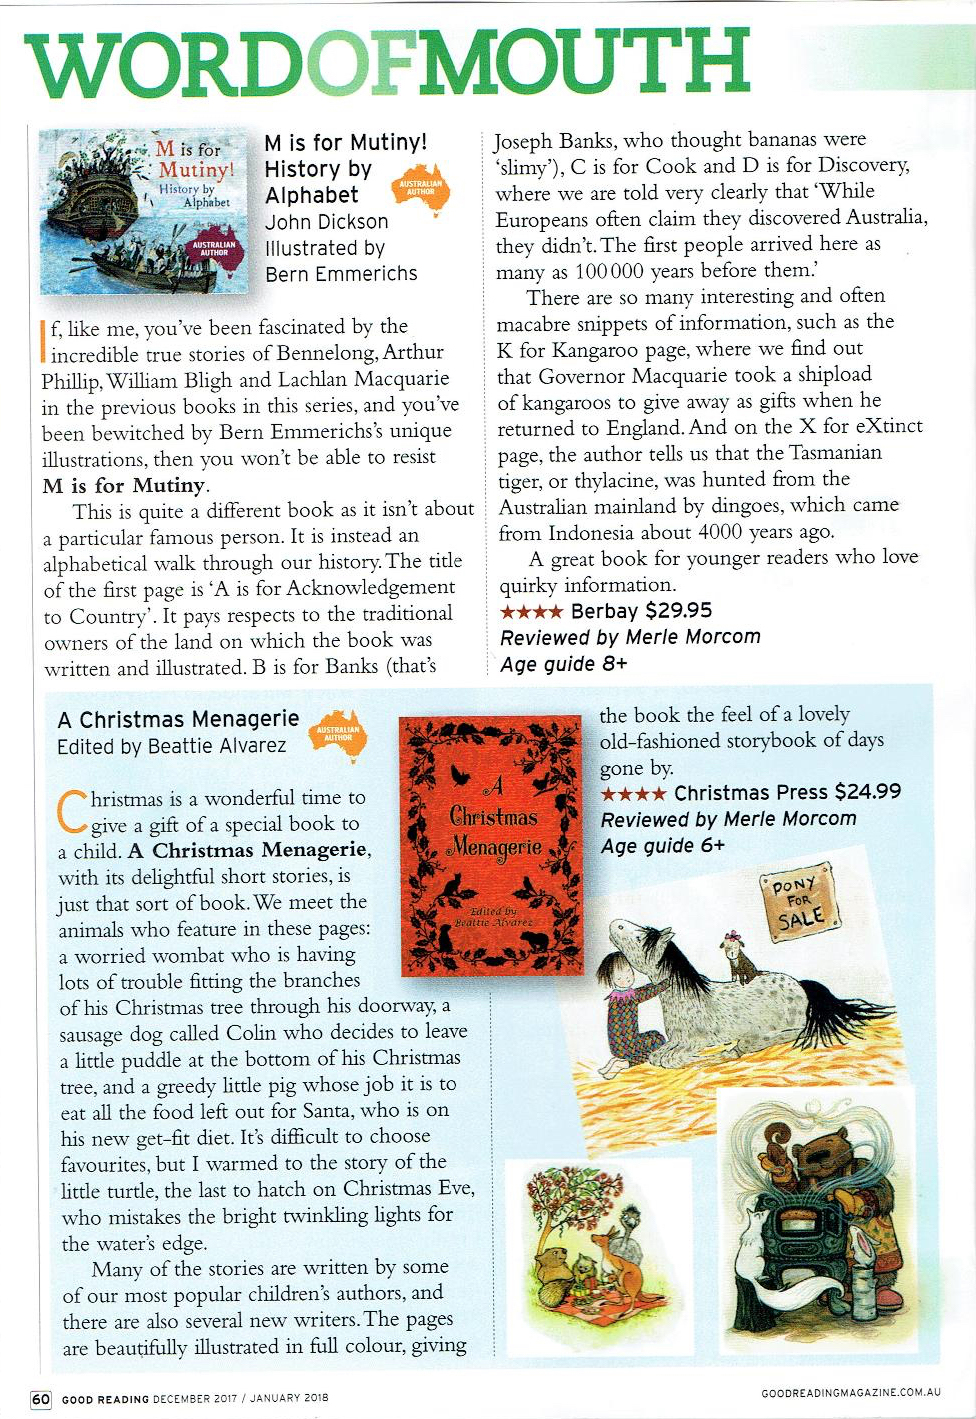 Christmas Press A Christmas Menagerie review Good Reading.jpg